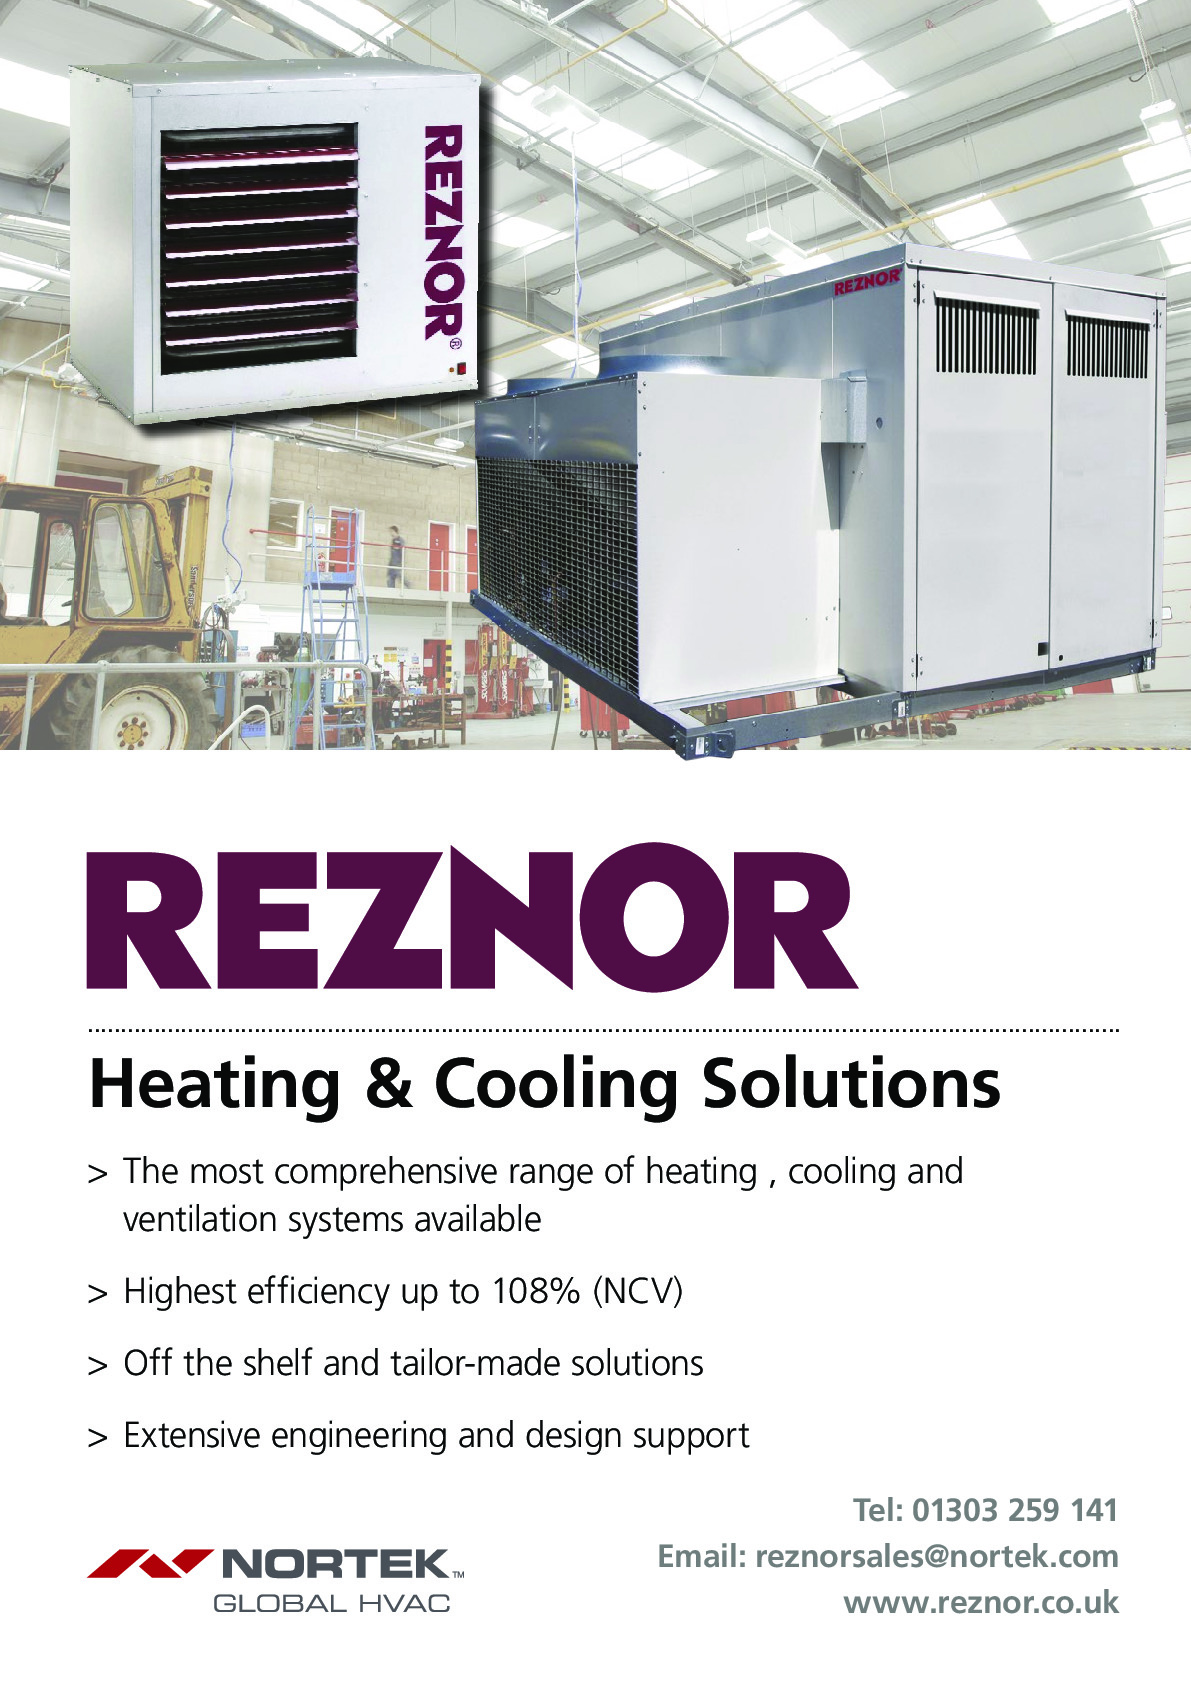 Reznor (a Division Of Nortek Global Hvac) advertisement 3 thumbnail